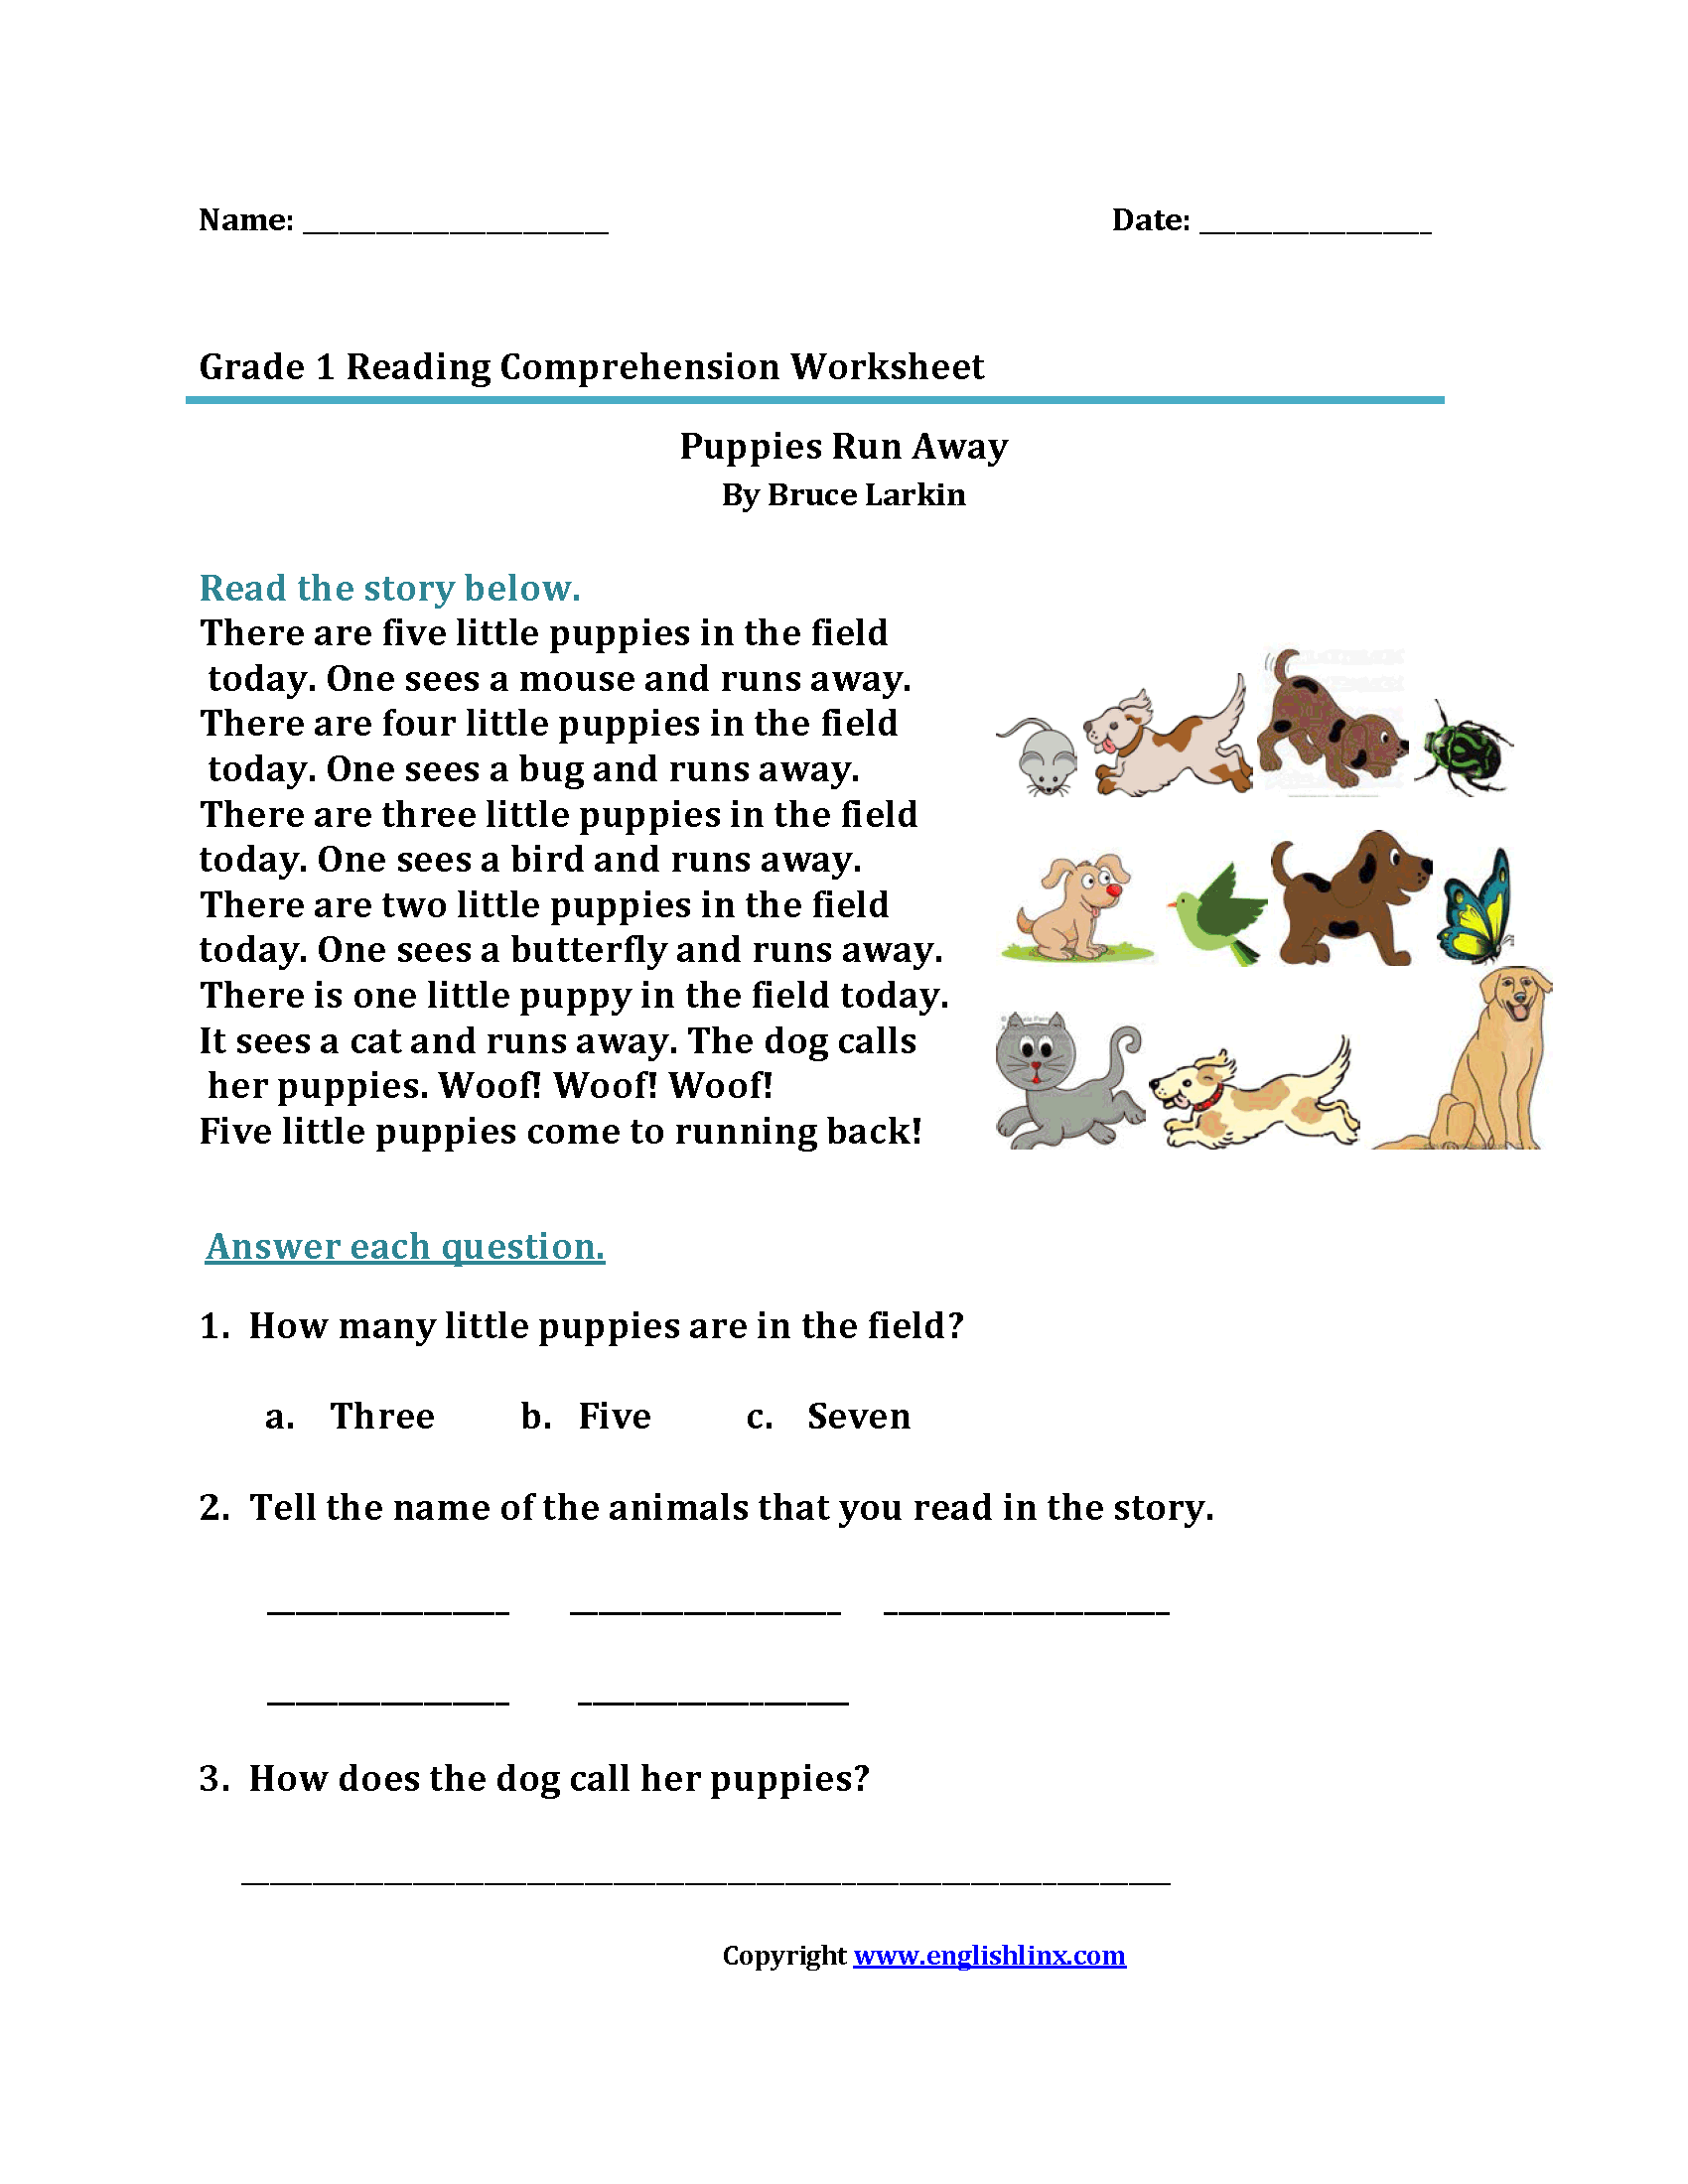 Worksheet Reading Comprehension Worksheets For 1st Grade